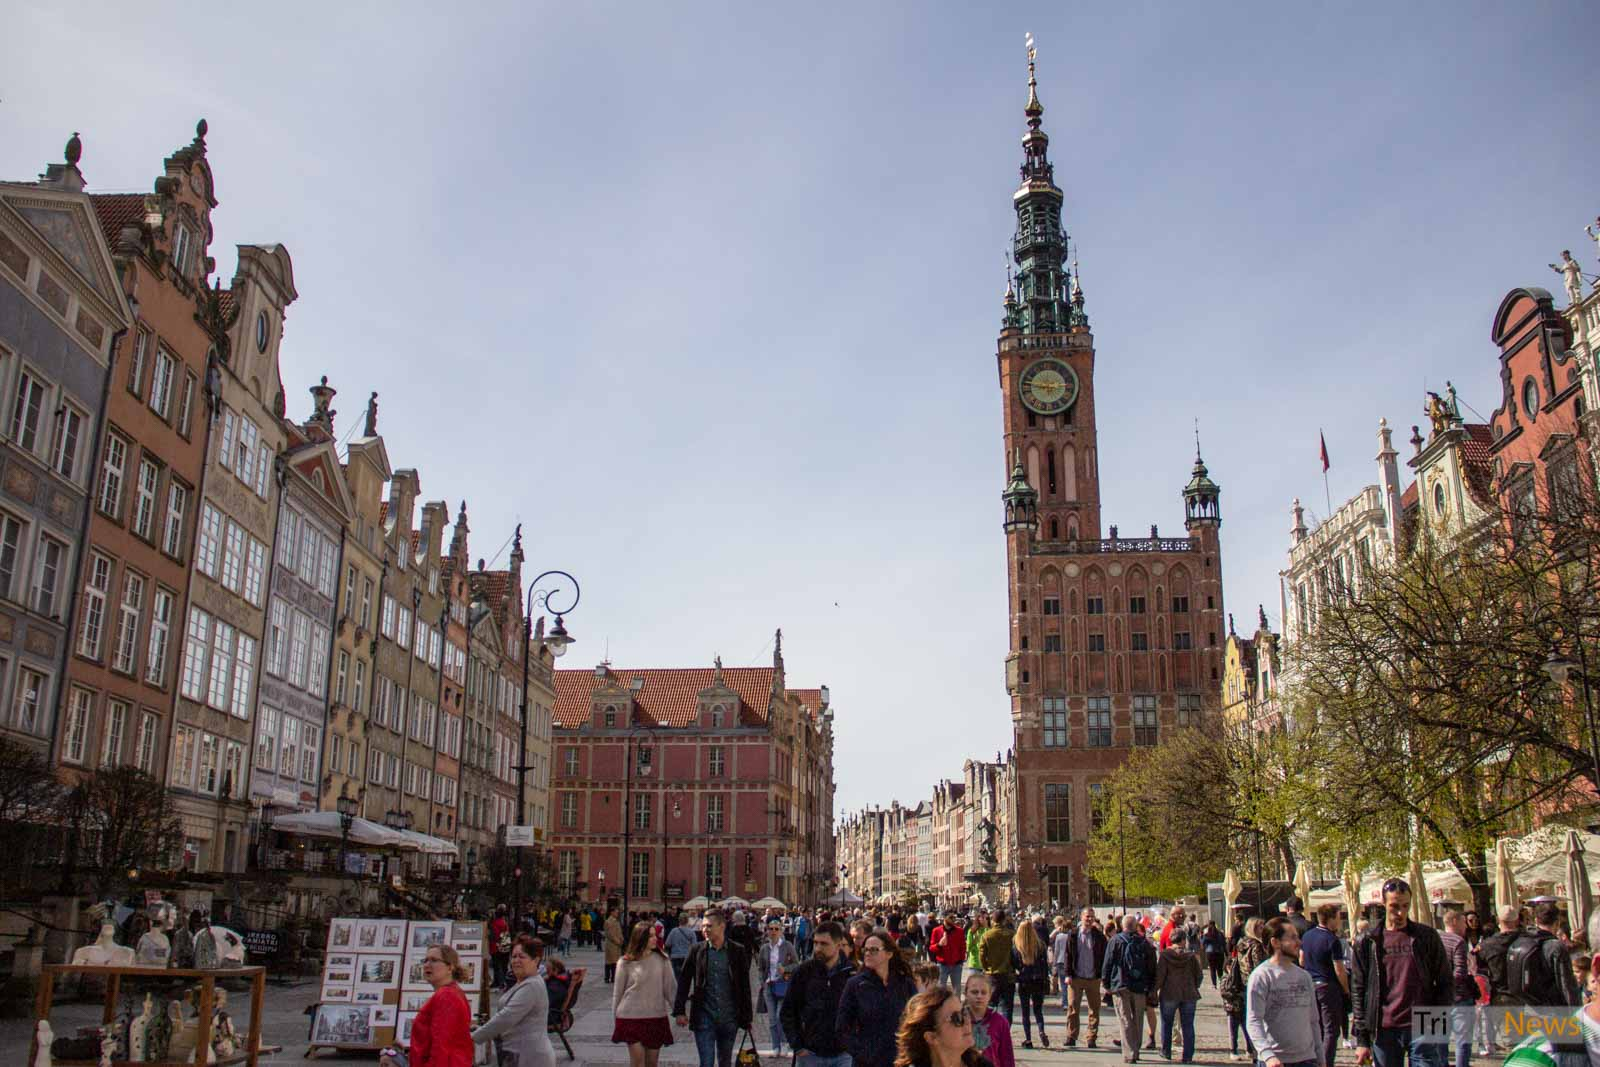 Gdansk Old Town, photo: Jakub Wozniak/Tricity News